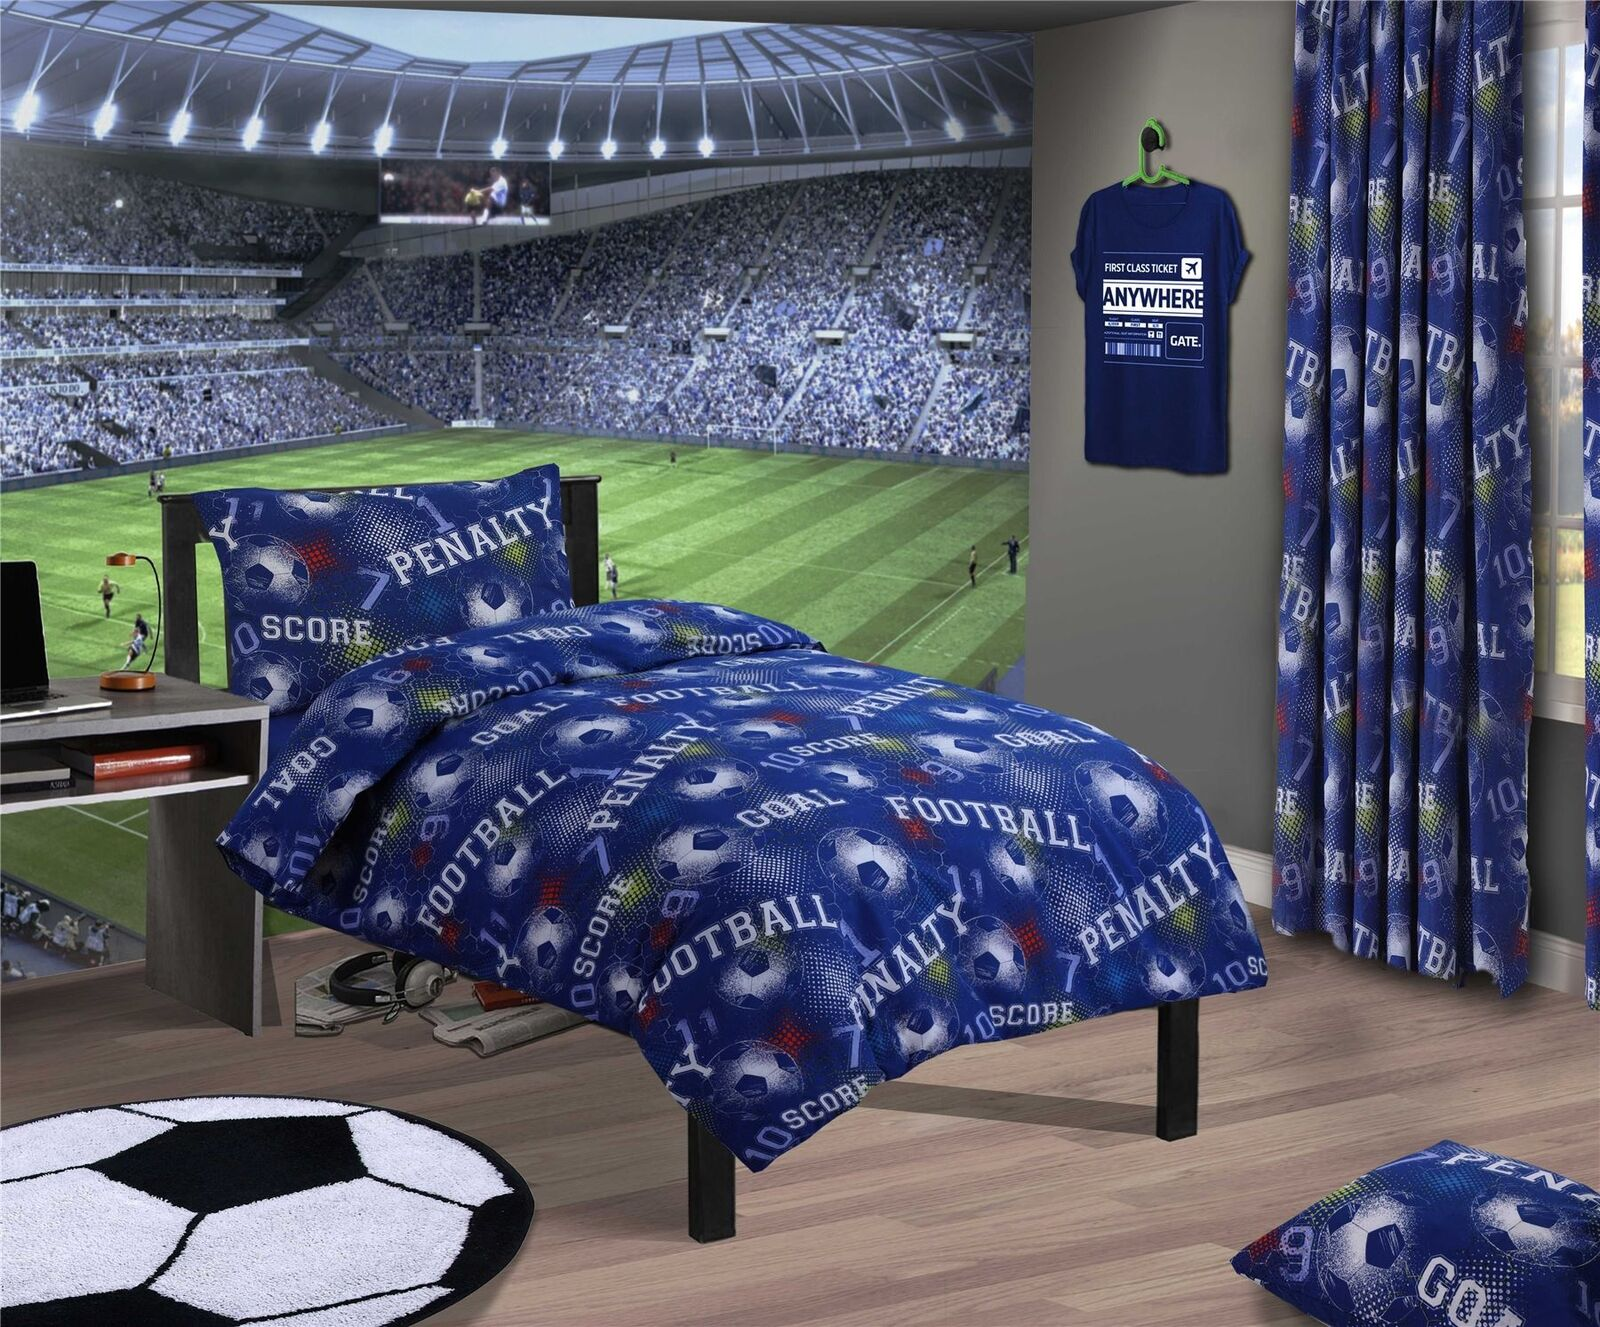 2 X FOOTBALL SOCCER NUMBERS GEOMETRIC Blau COTTON BLEND König Größe DUVET StKunstseiteS